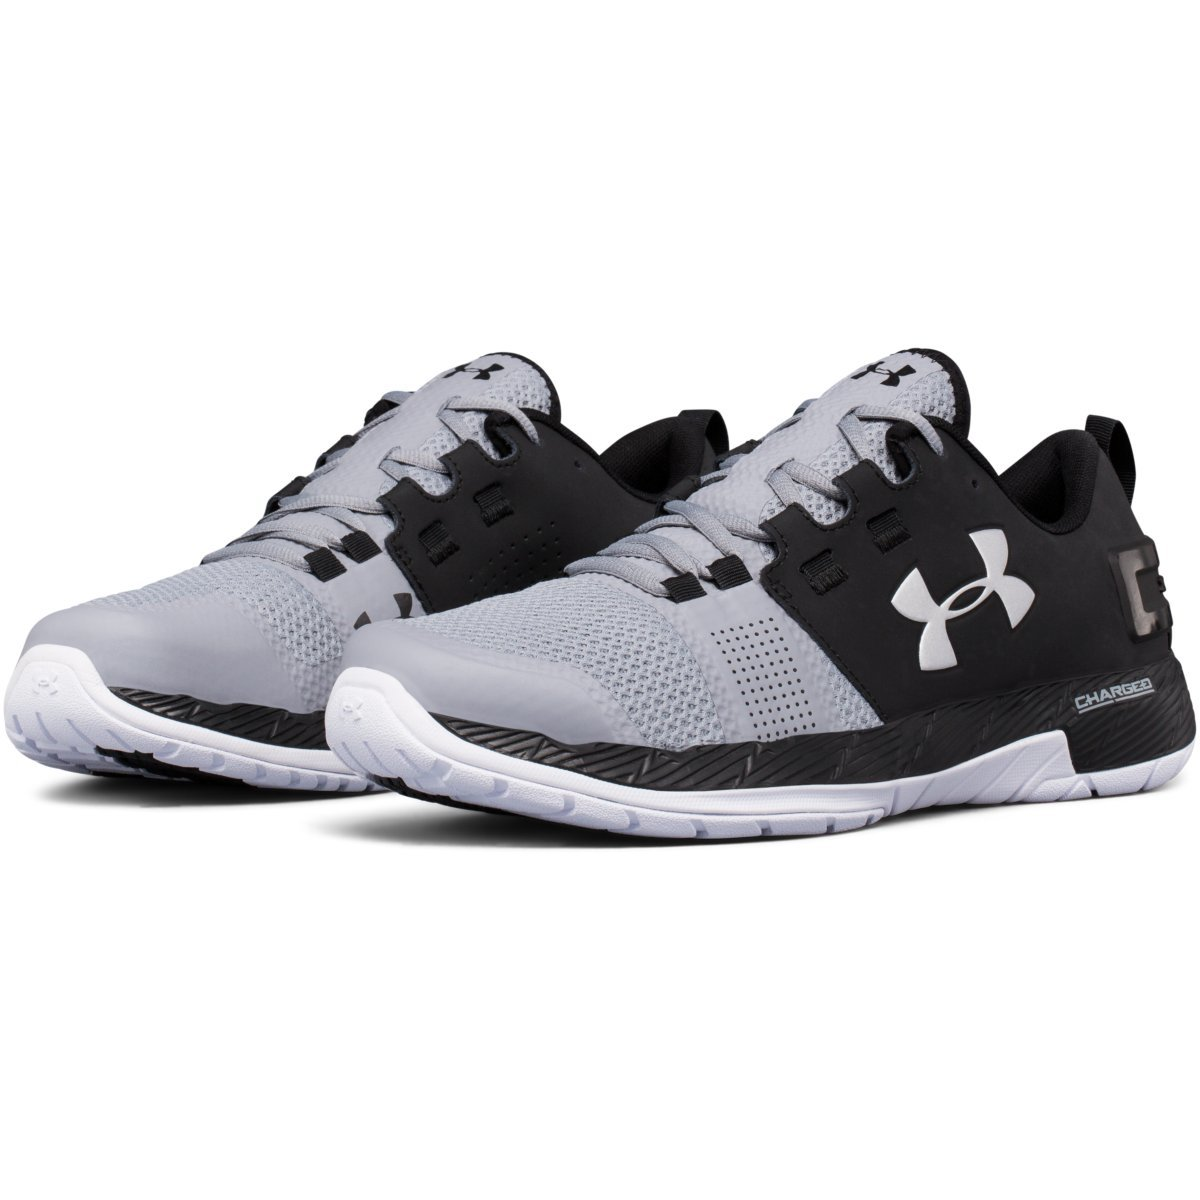 buy popular 43797 1fd11 UNDER ARMOUR Men's UA Commit Cross Training Shoes, Black ...